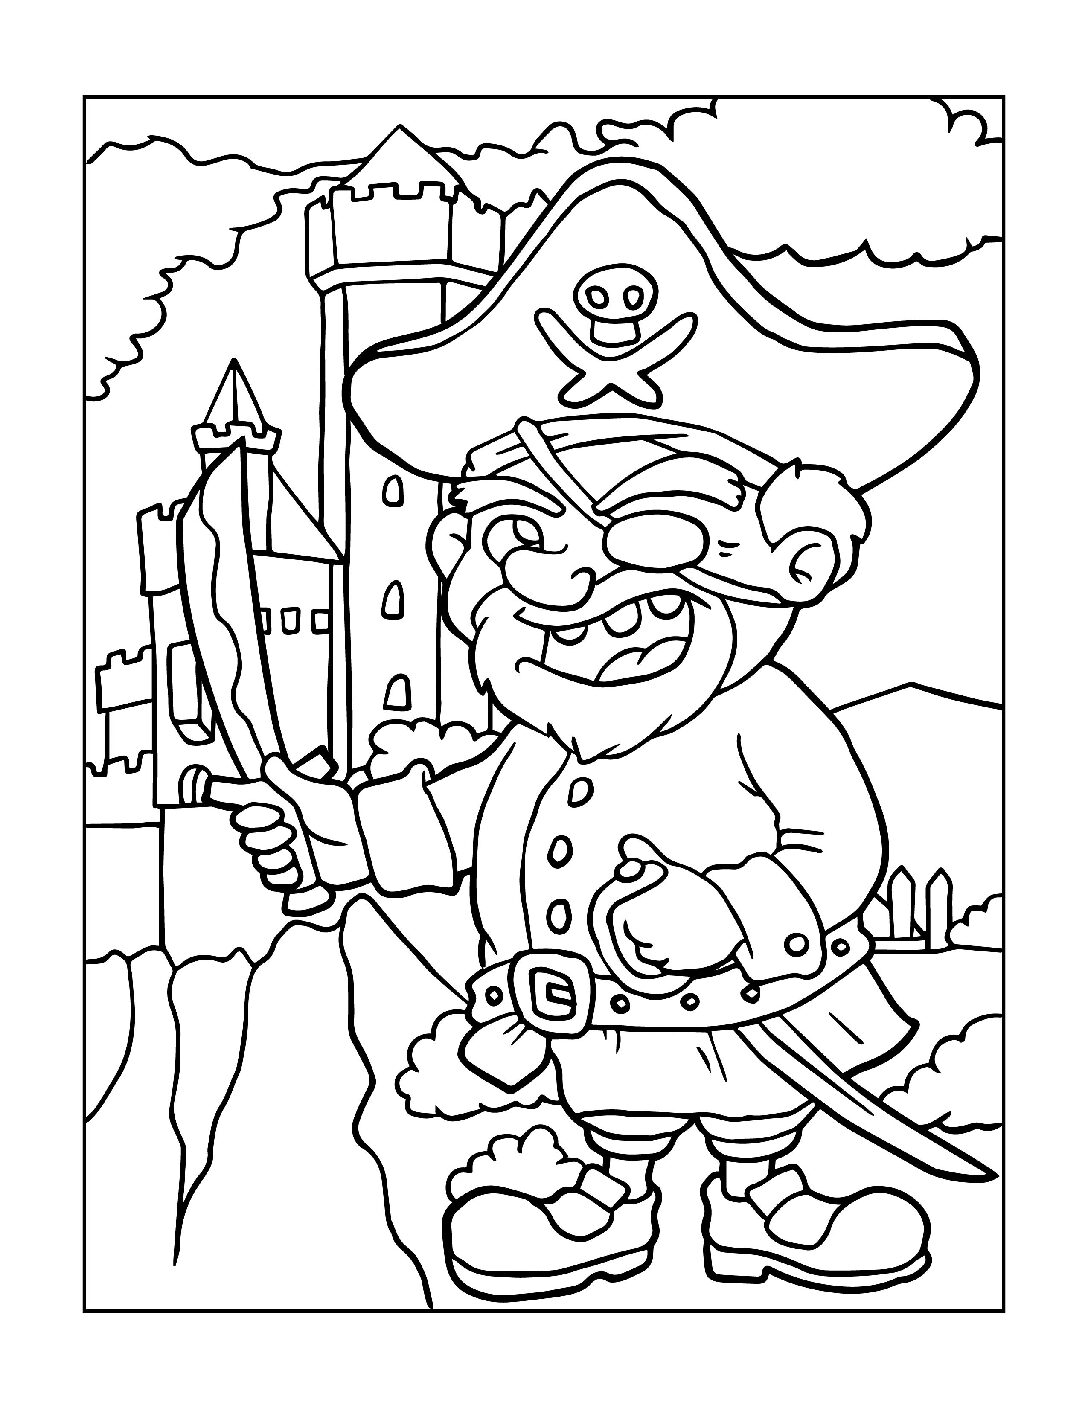 Coloring-Pages-Pirates-and-Knights-for-Boys-13-01-pdf Free Printable Pirates &  Knights Colouring Pages